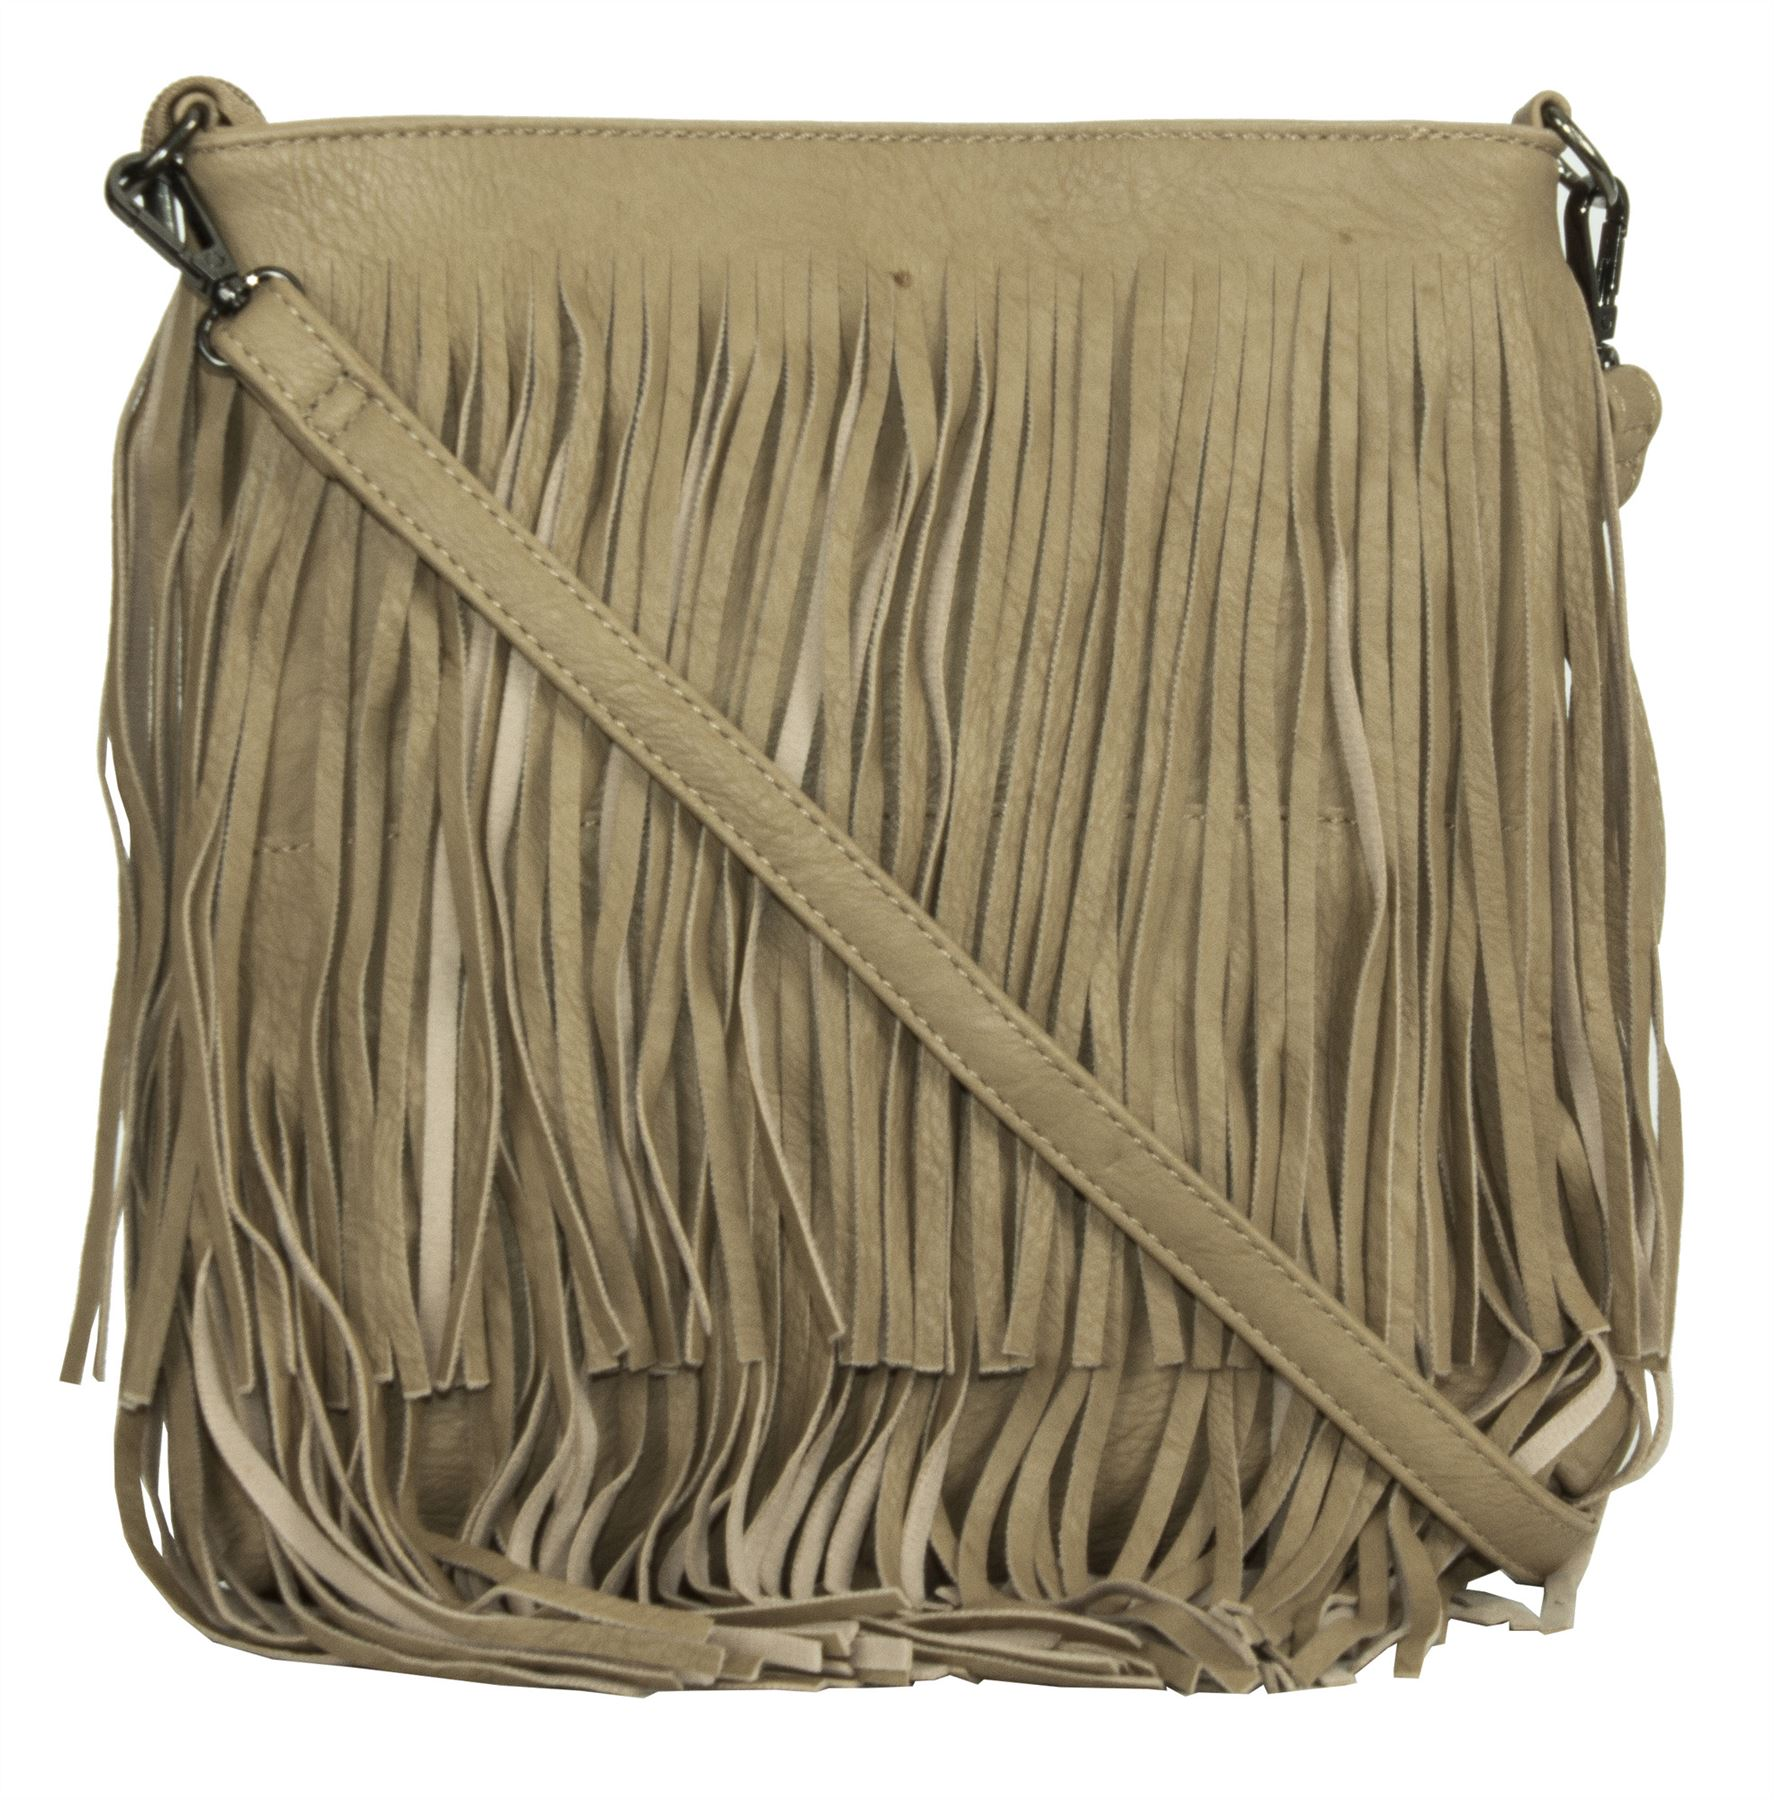 Big Handbag Shop Womens Medium Size Faux Leather Tassel Fringe Shoulder Bag